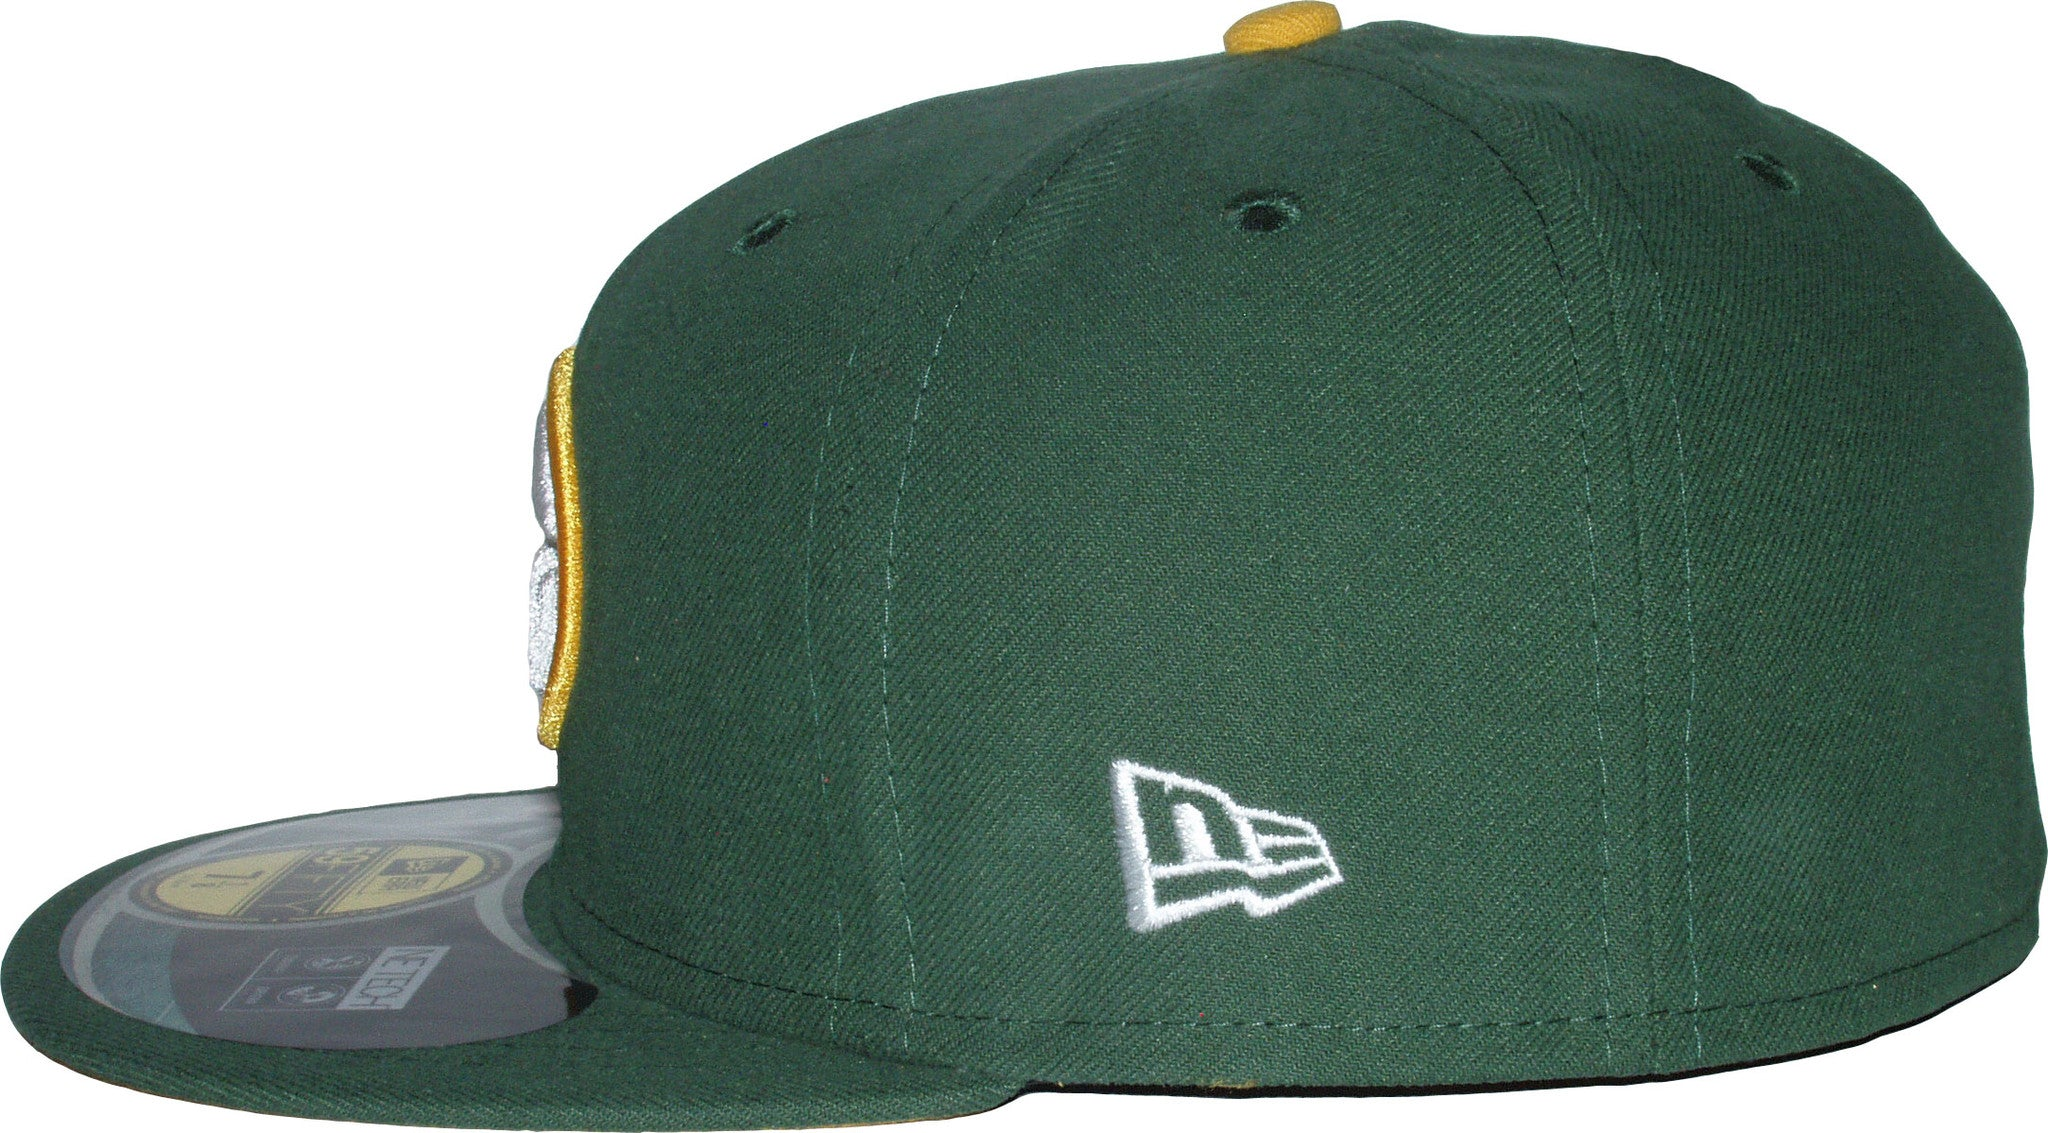 2c8993e7789 ... New Era 59Fifty NFL On Field Green Bay Packers 5950 Game Cap + Gift Box  ...